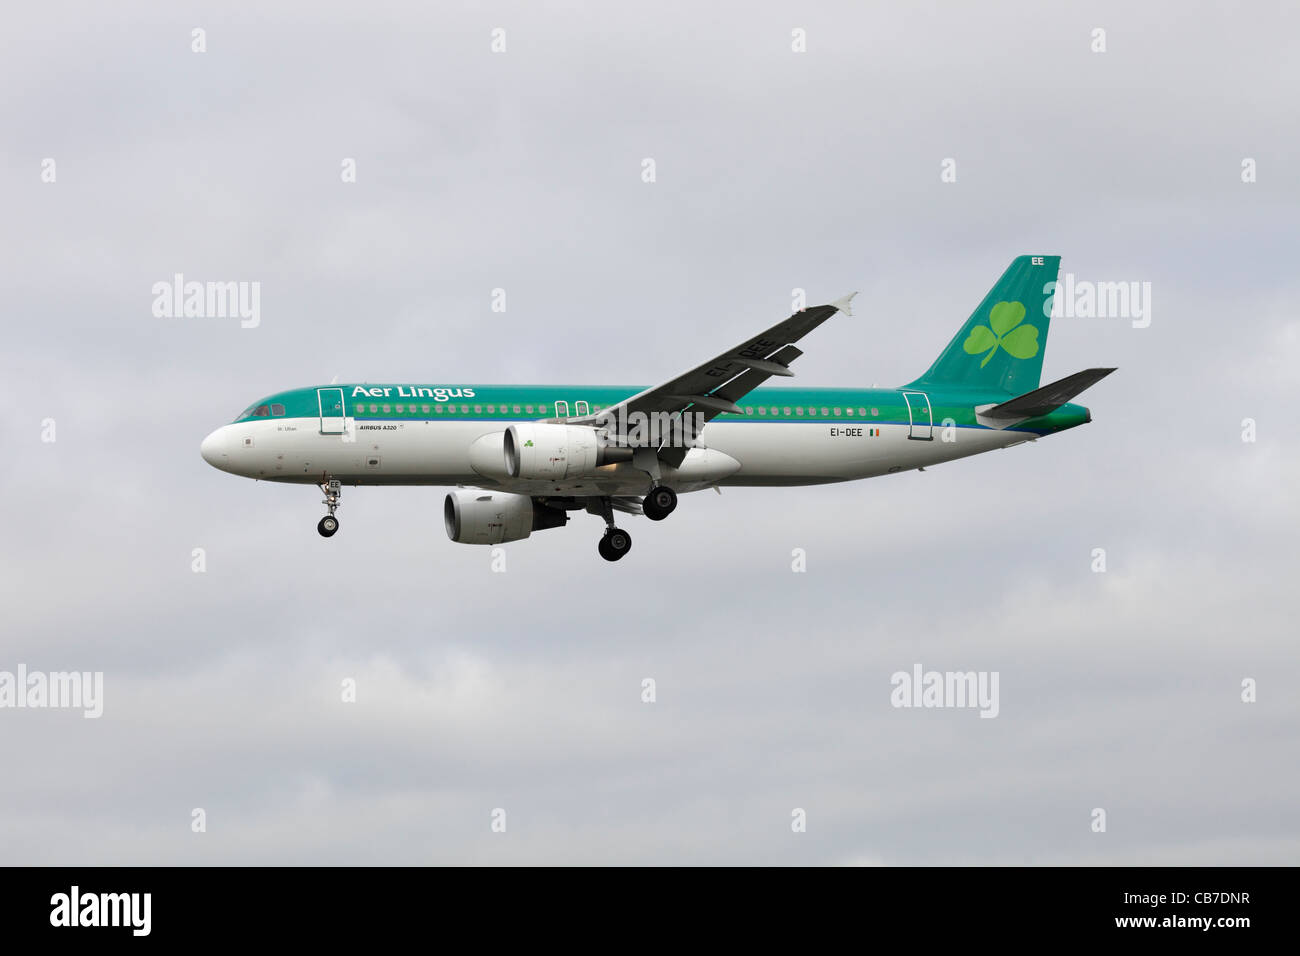 Aer Lingus Airbus A320-214 EI-DEE on approach to Heathrow : cloudy sky - Stock Image